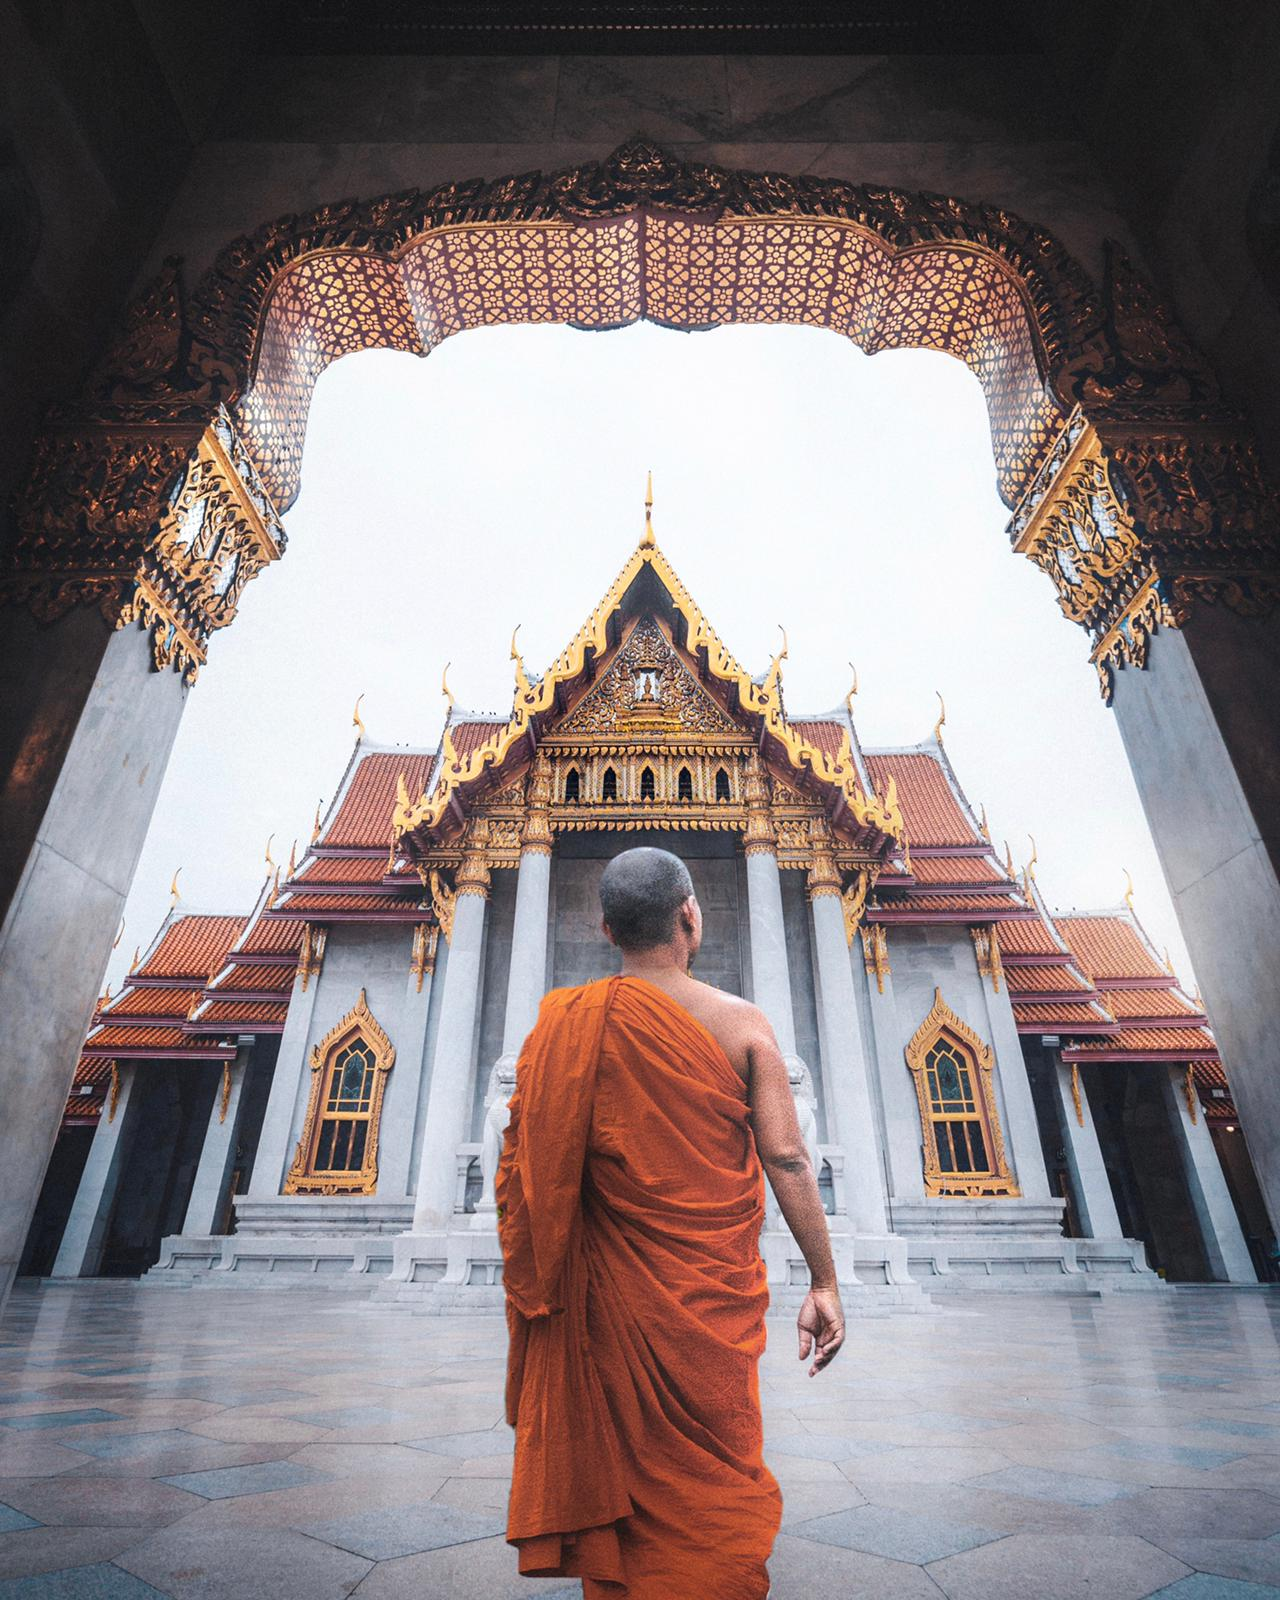 A monk at the Marble Temple, Bangkok, Thailand.